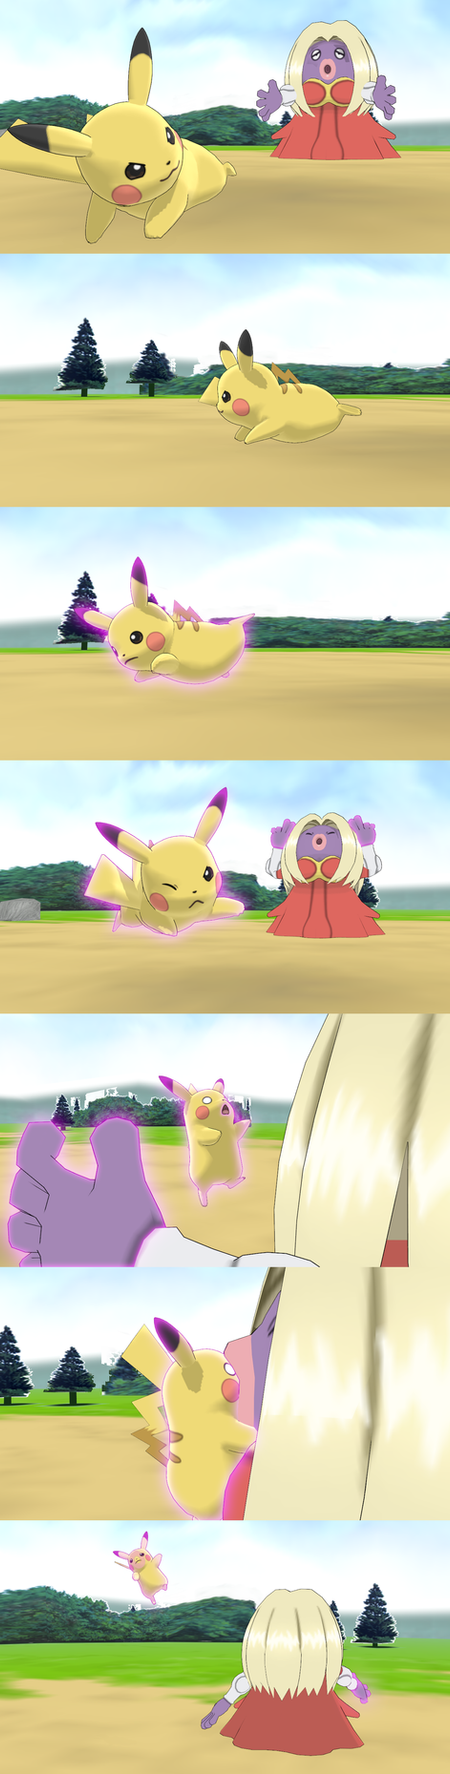 [MMD] (comic) (req) Jynx used 'Telekissnesis' by Jasalad